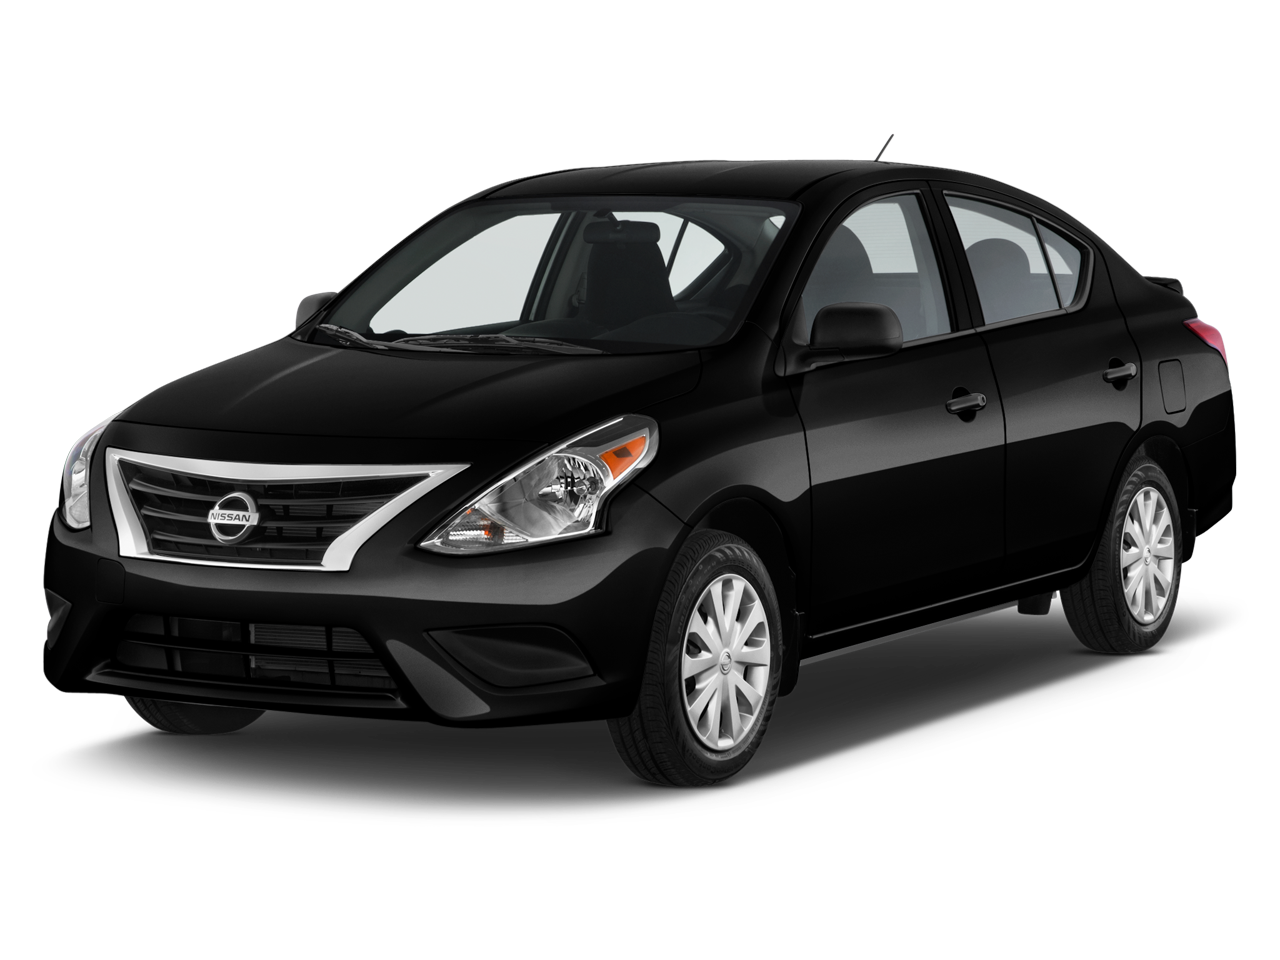 2017 nissan versa for lease near long island ny legend nissan. Black Bedroom Furniture Sets. Home Design Ideas